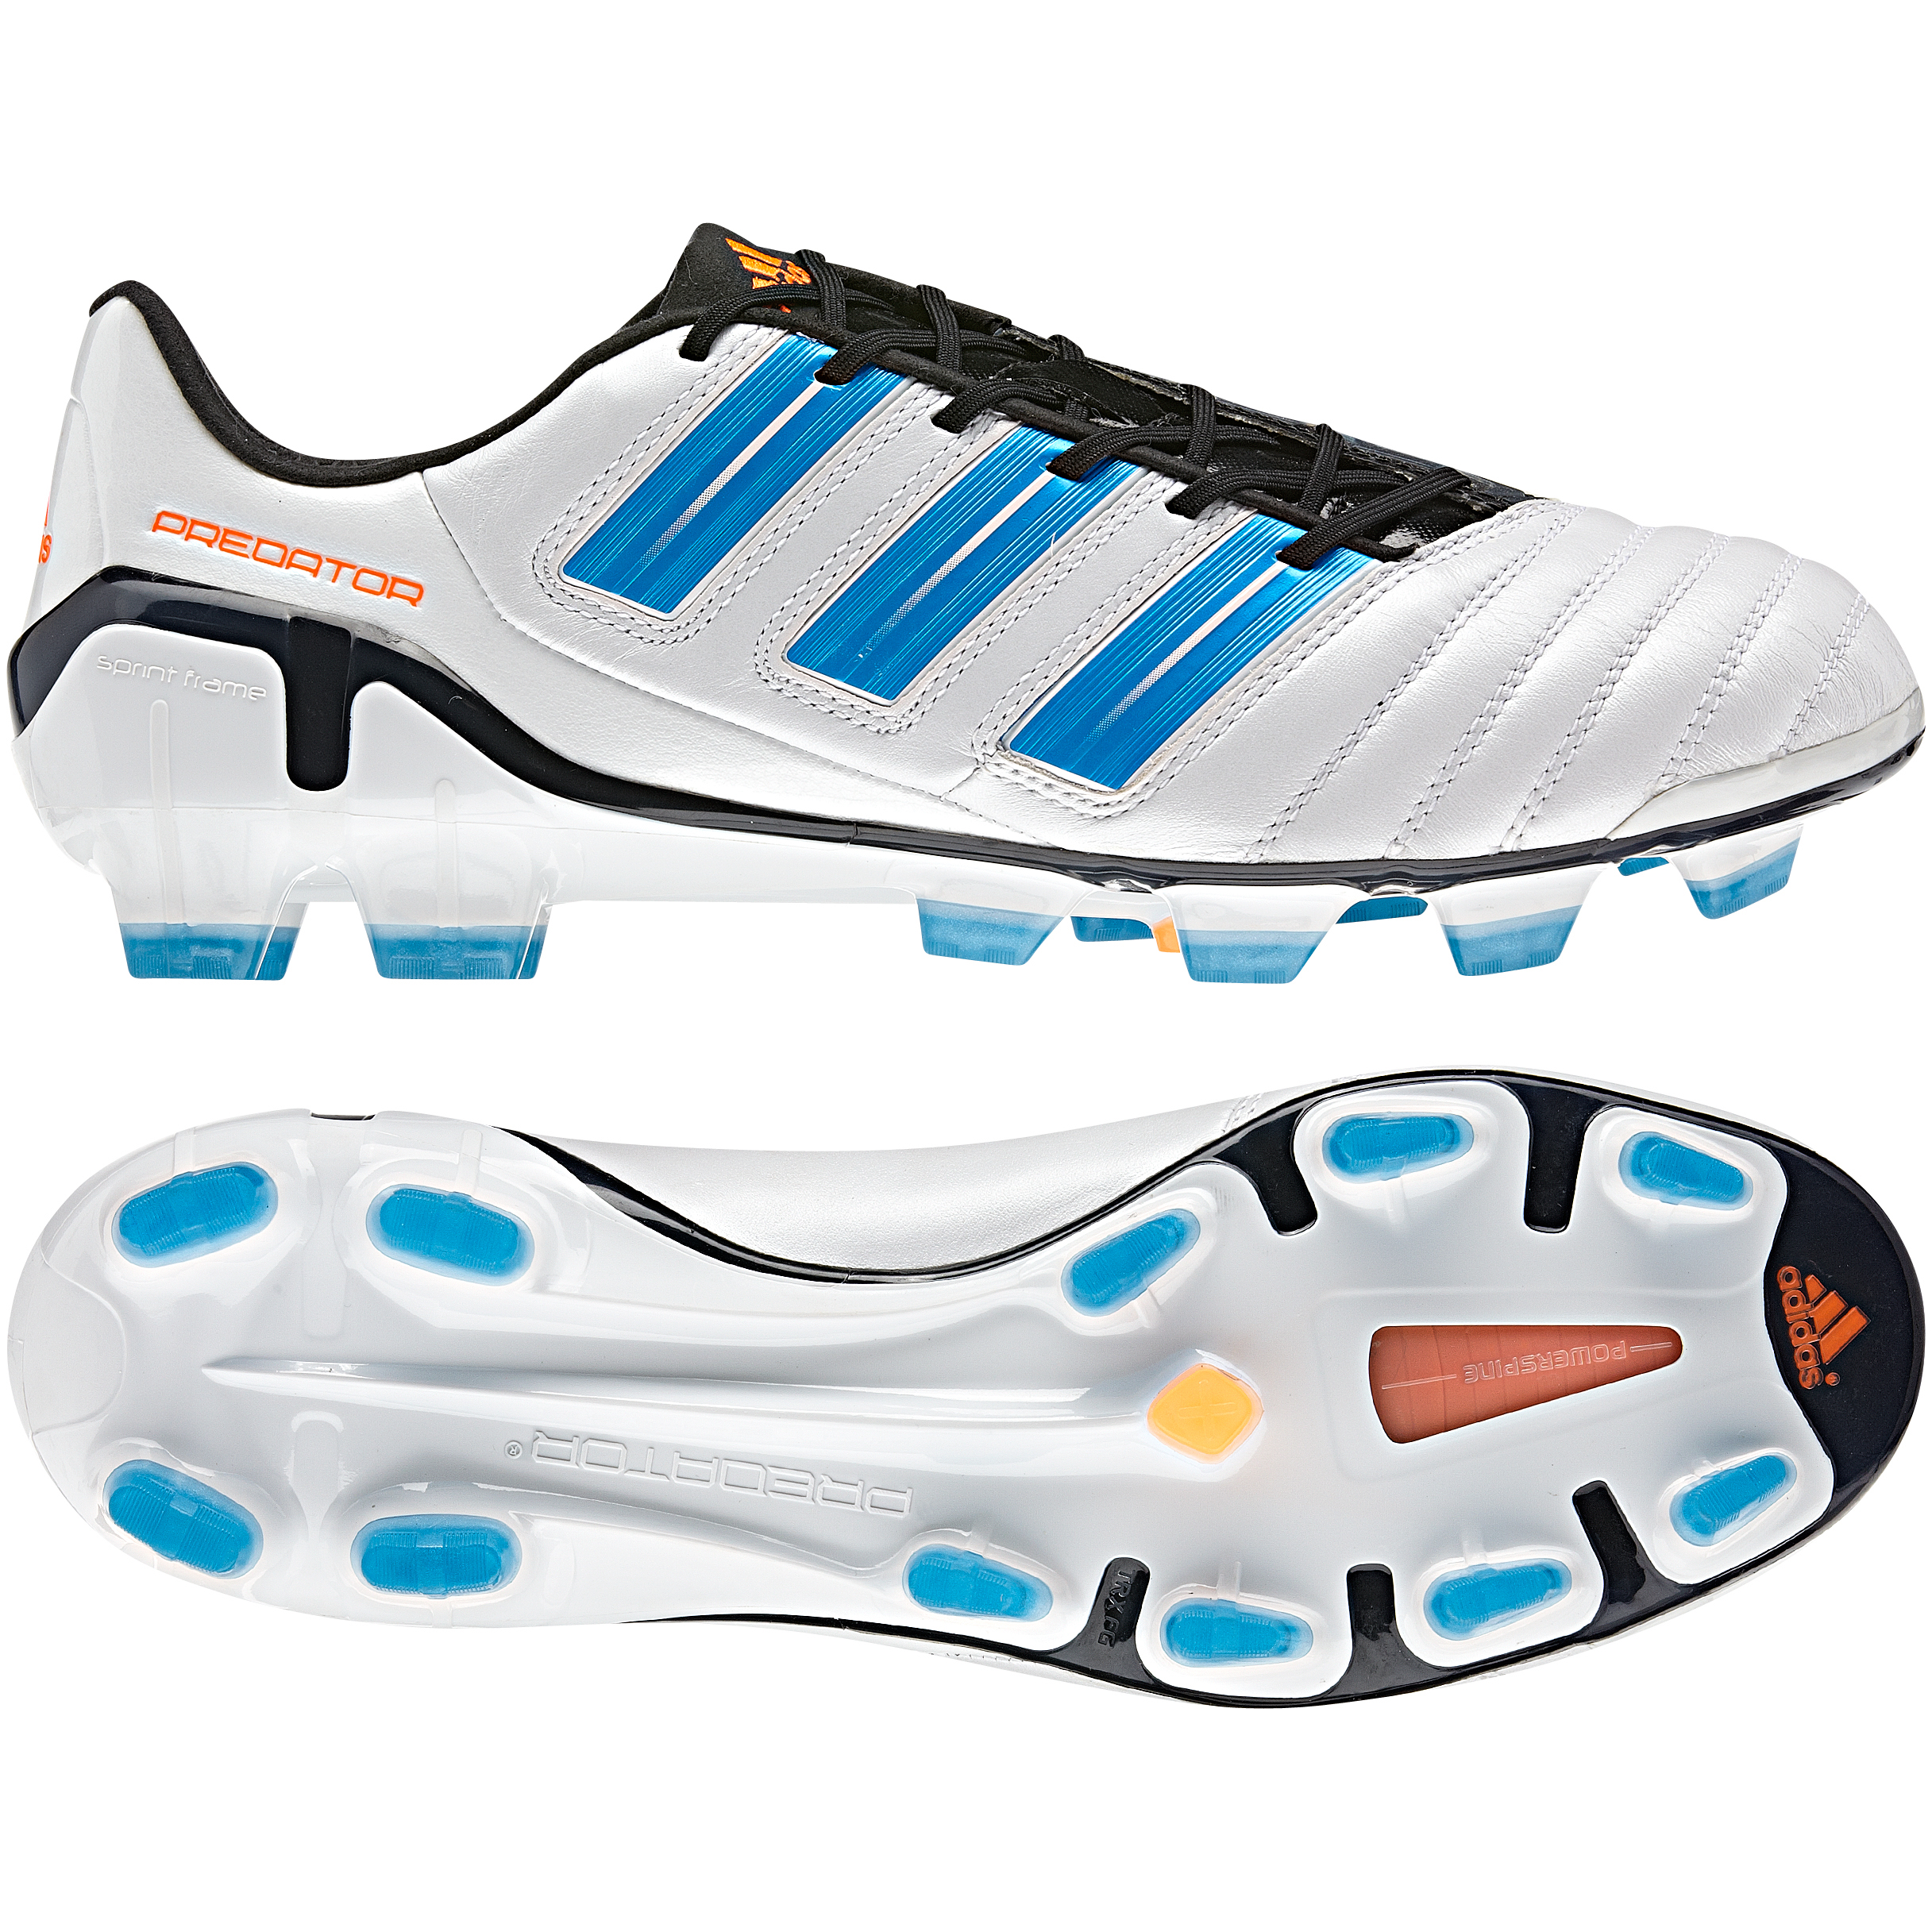 adidas adipower Predator TRX Firm Ground Football Boots - Predator Run Wht Met. / Pred Sharp Blue Met. / Warning